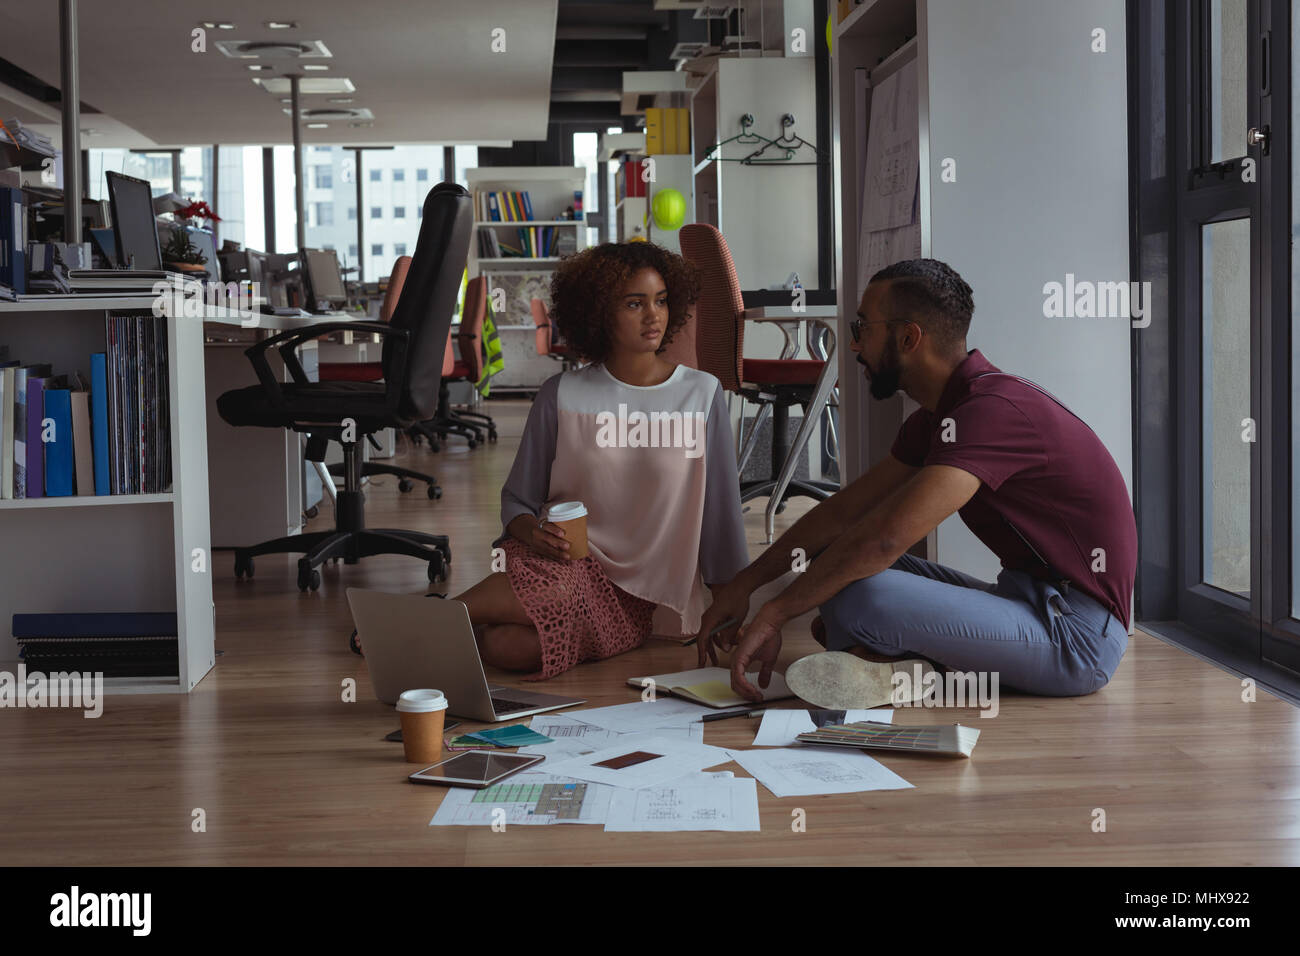 Architects interacting with each other on floor - Stock Image